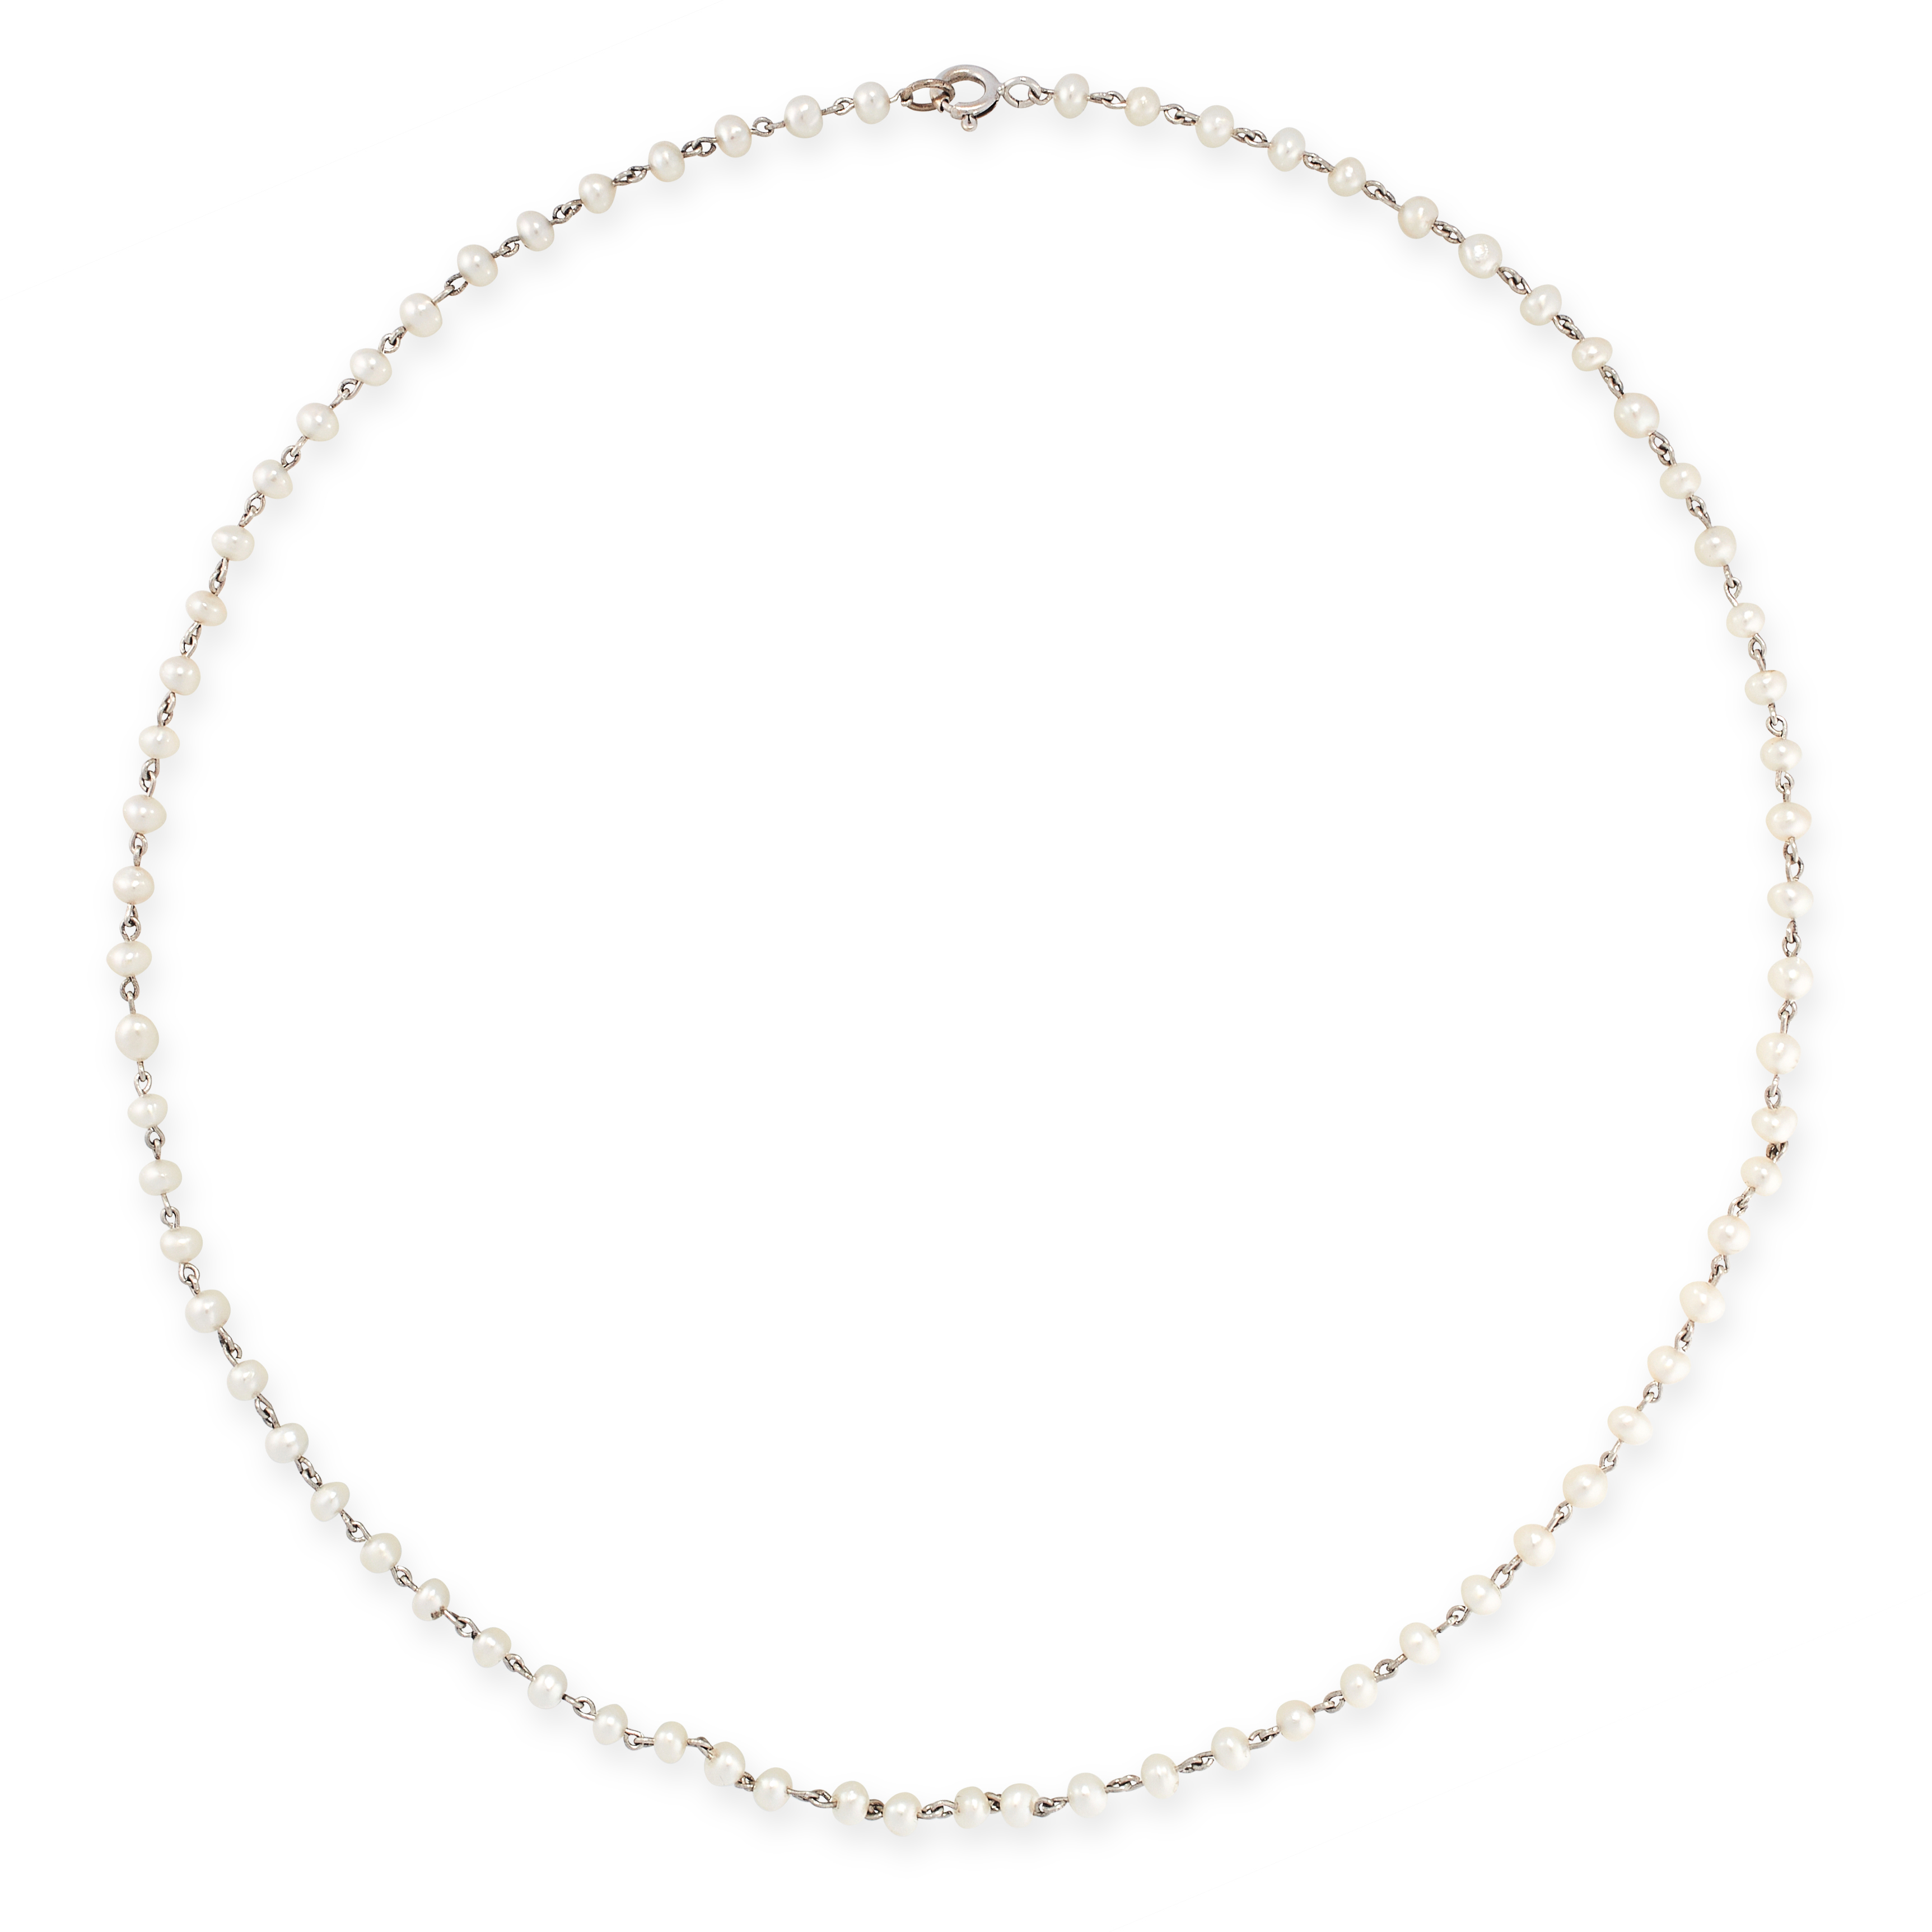 A PEARL CHAIN NECKLACE, EARLY 20TH CENTURY comprising a single row of seventy-two pearls,